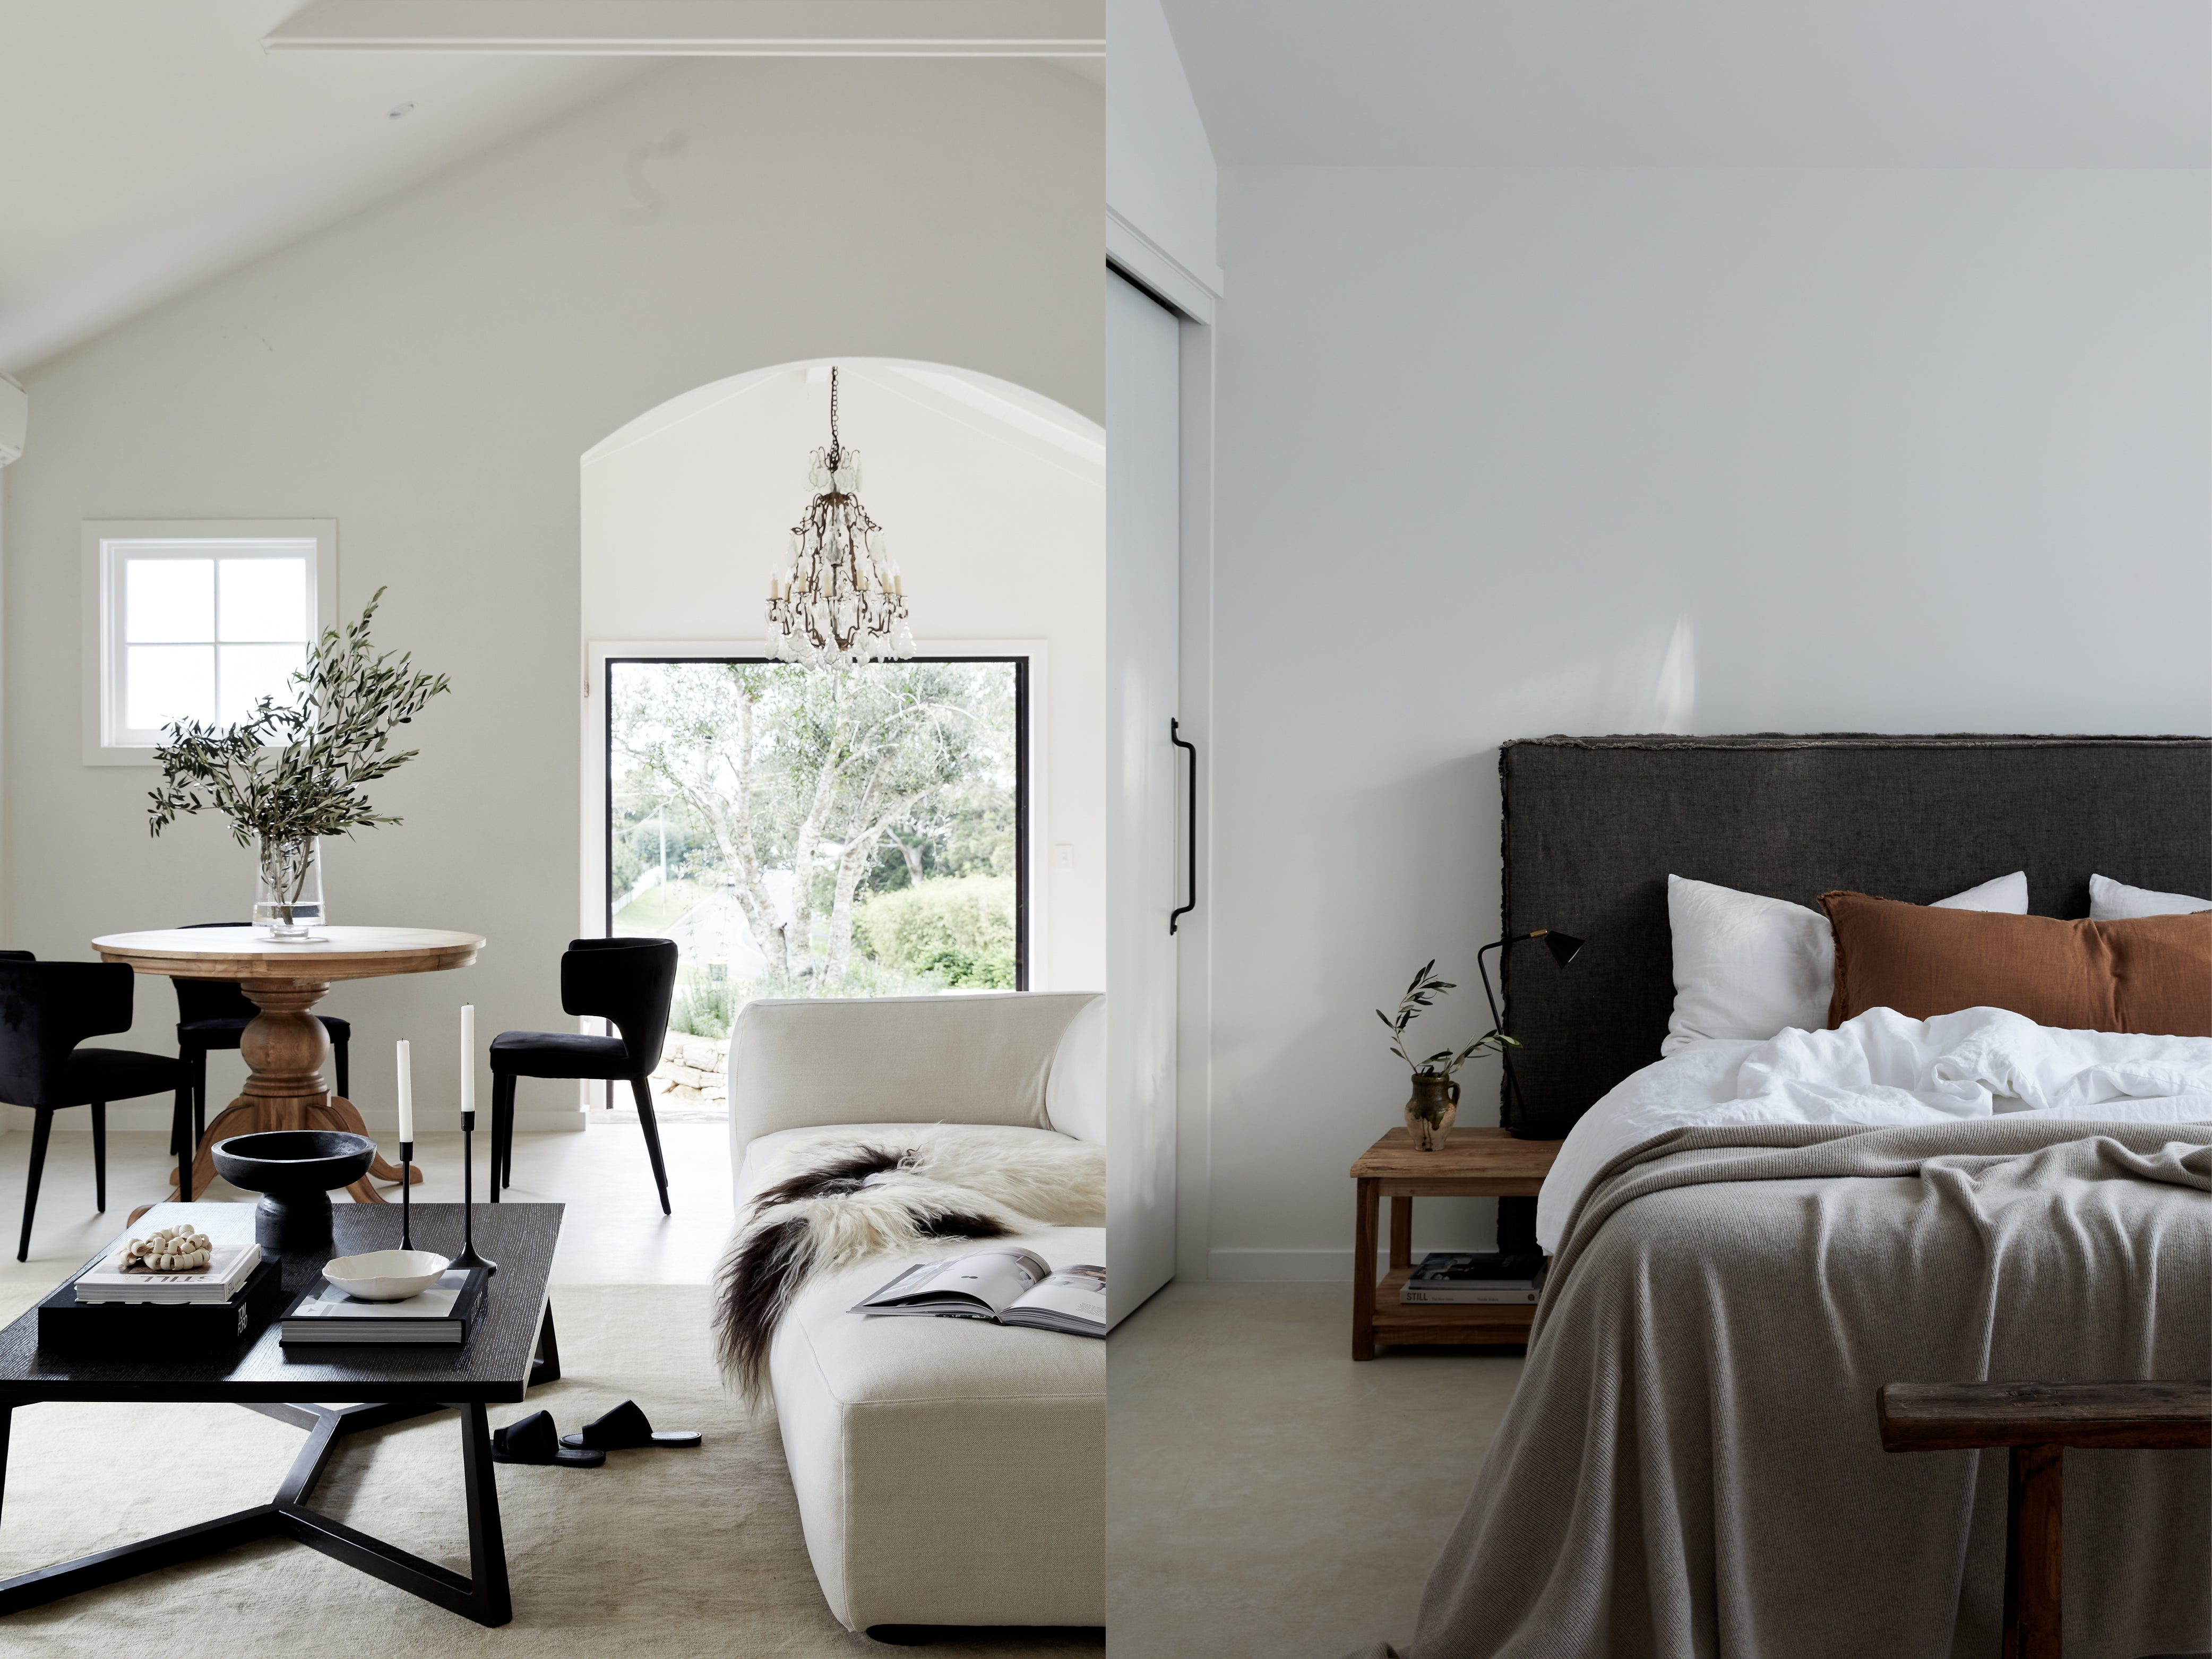 Design work done by Mel Gibbons of Avenue Twenty Two - living and dining space in neutral tones and soothing bedroom